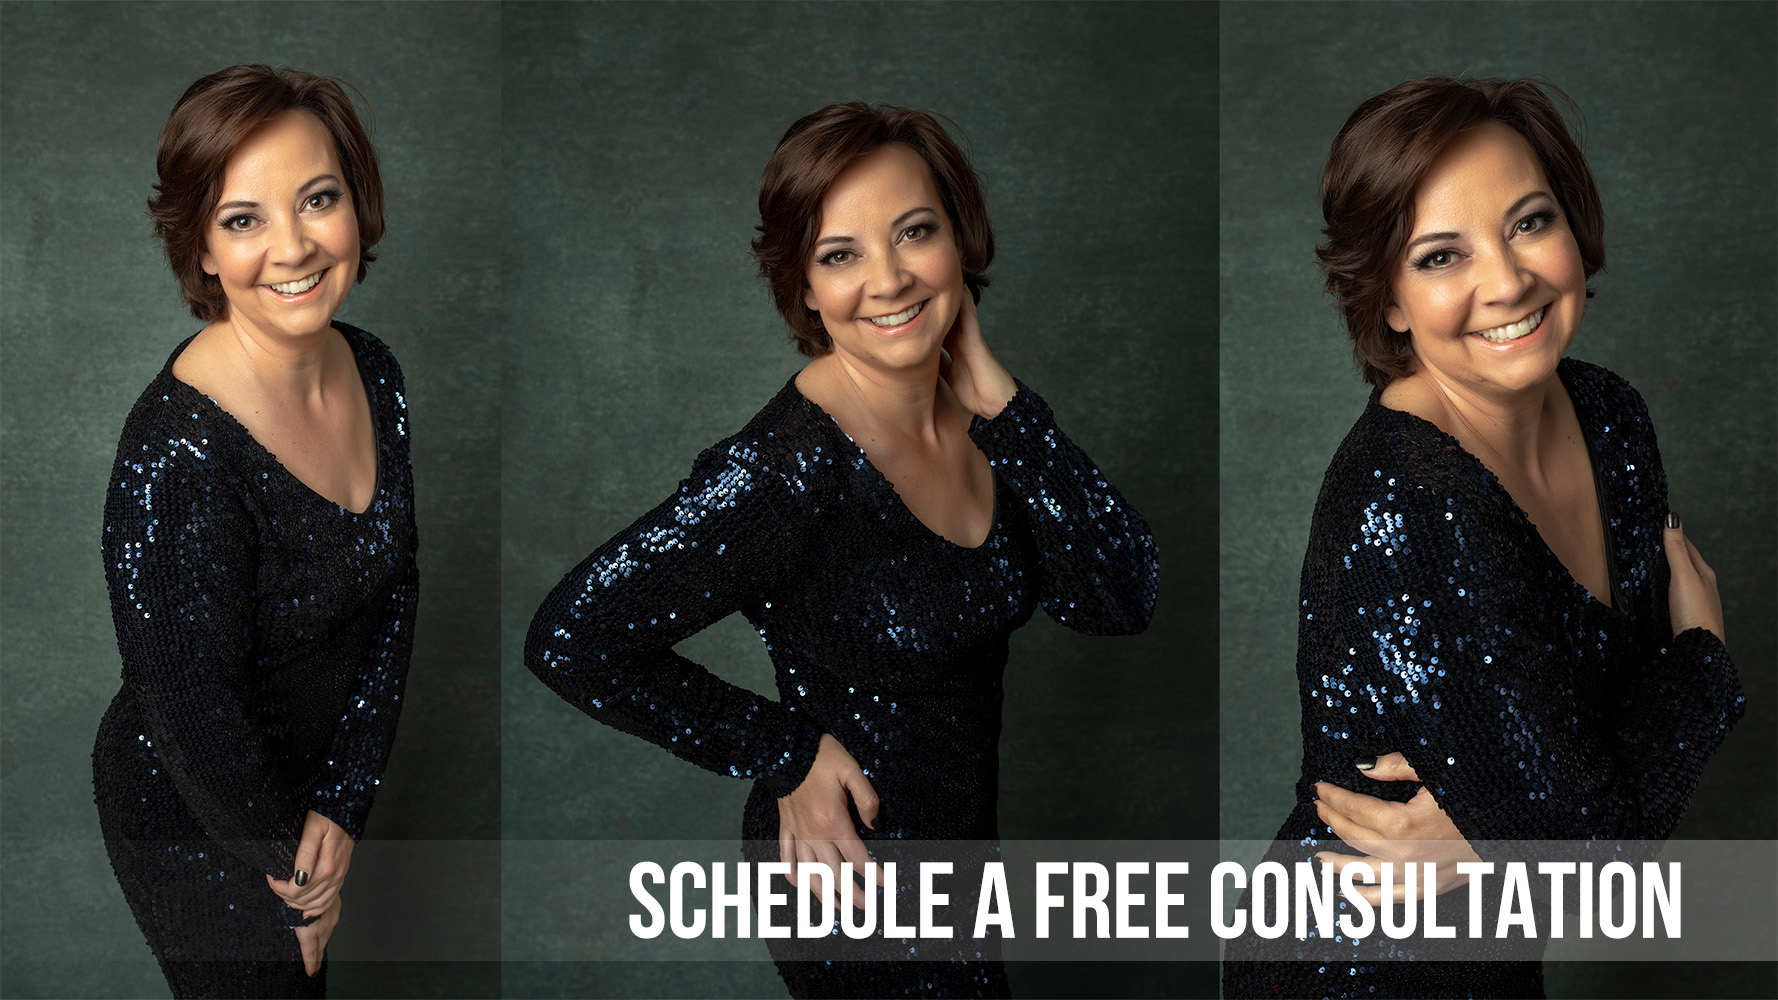 Free Consultation - Click to schedule a no obligation consultation at our Cypress, Texas location. You may also e-mail maribellaportraits@gmail.com